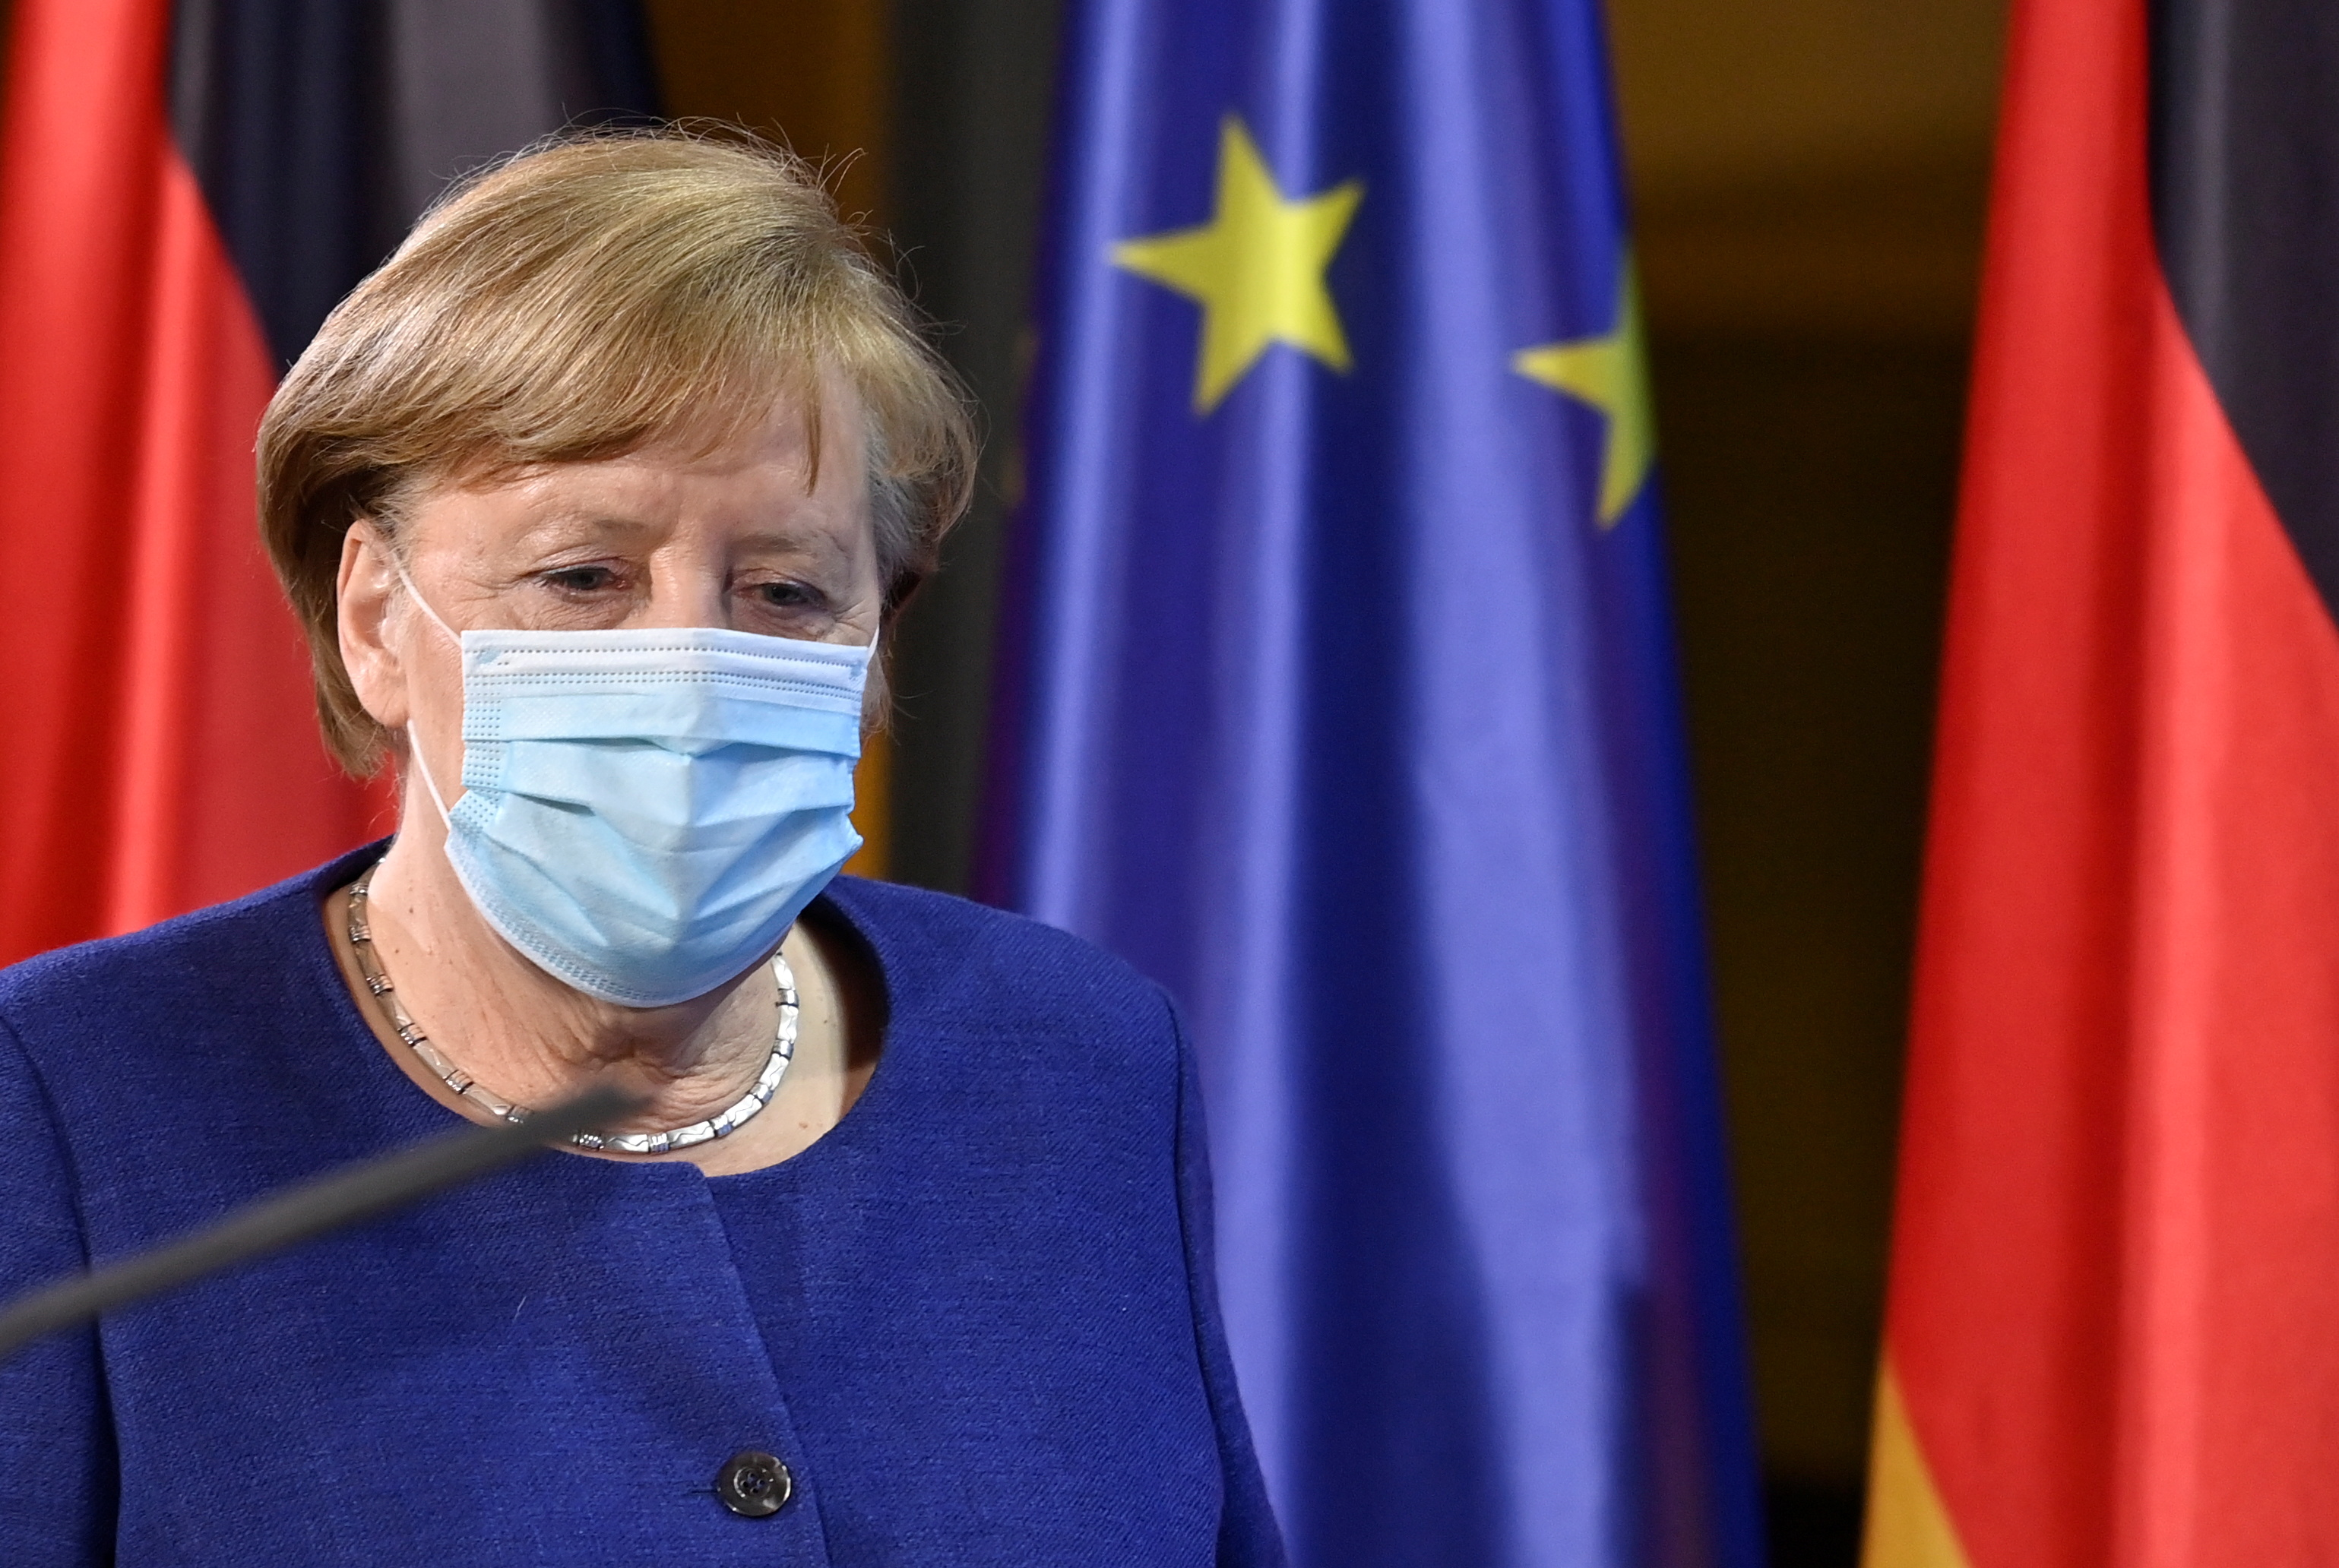 German Chancellor Angela Merkel arrives for a press conference following the EU leaders' videoconference in Berlin, Germany February 25, 2021. John MacDougall/Pool via REUTERS